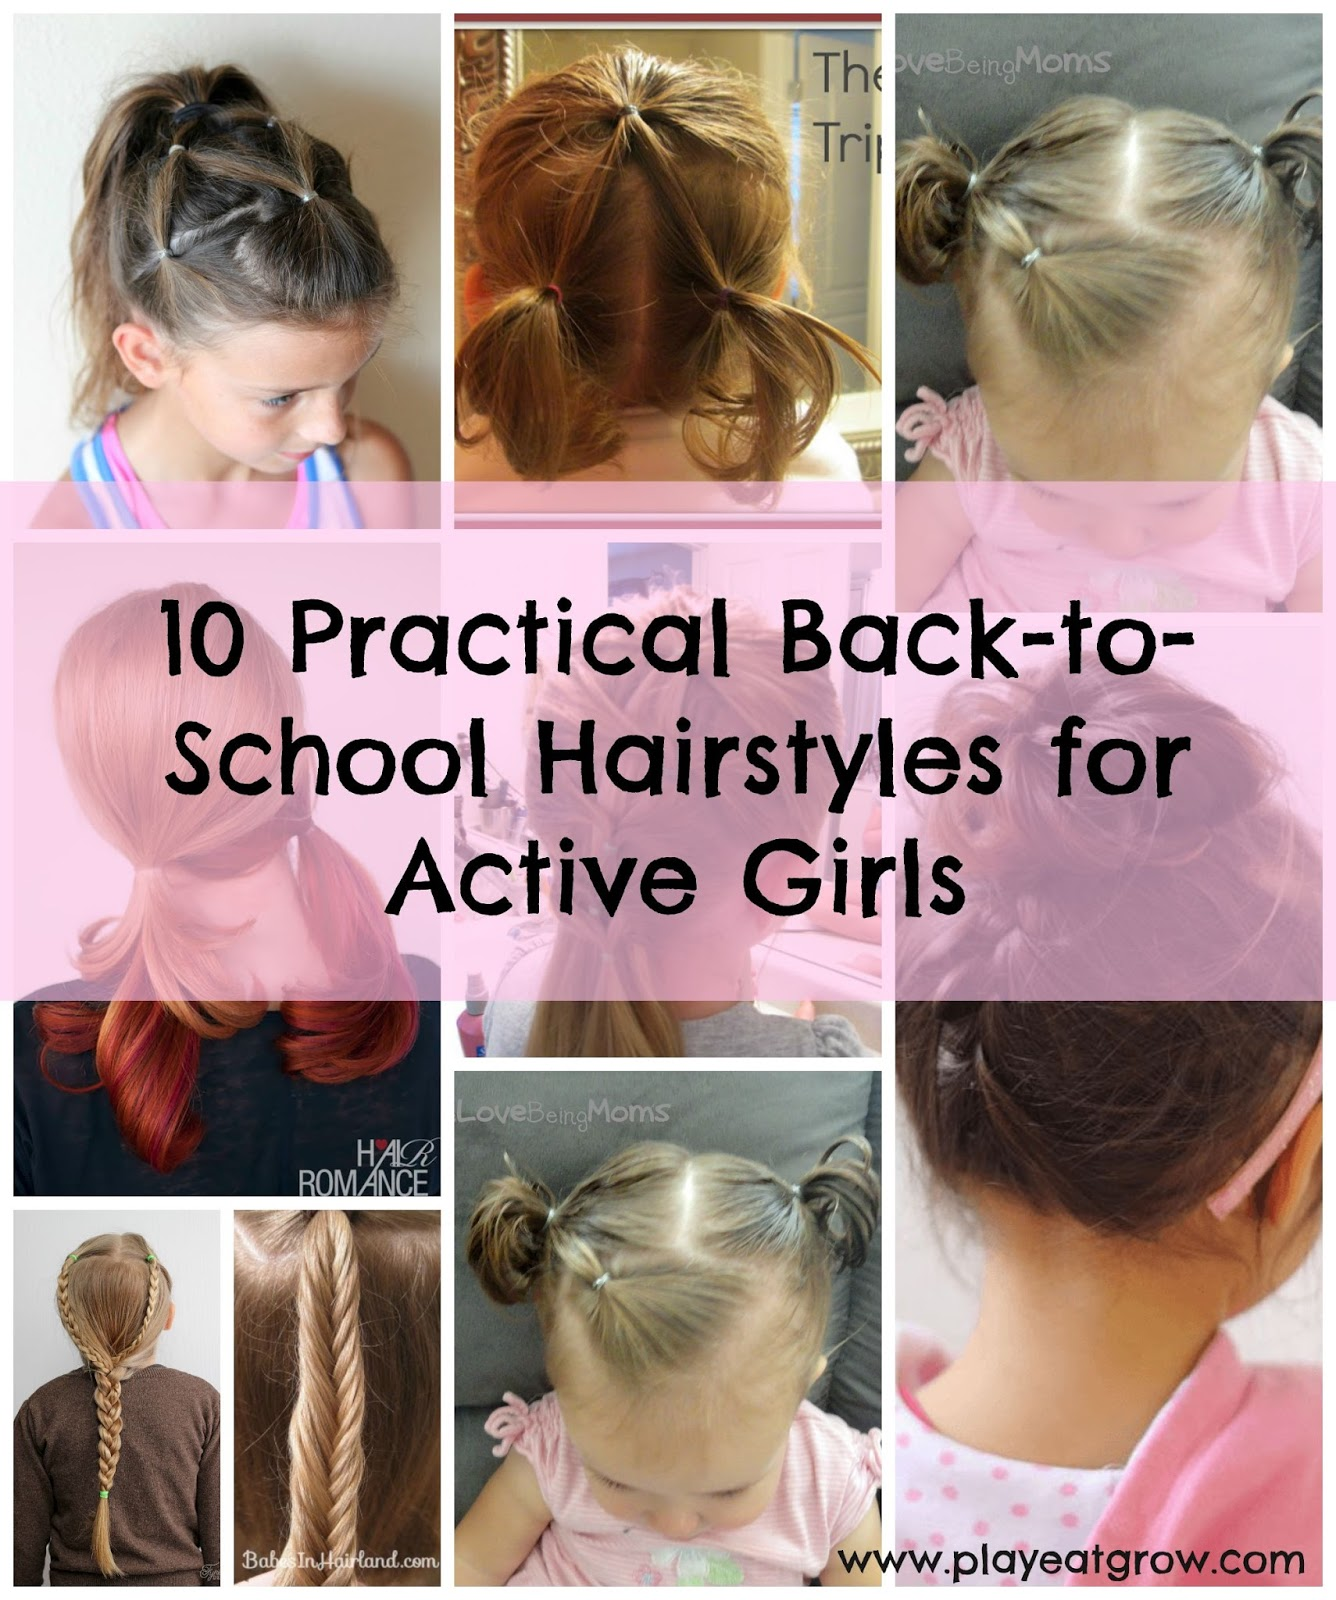 10 Quick, Easy Hairstyles for Active Girls